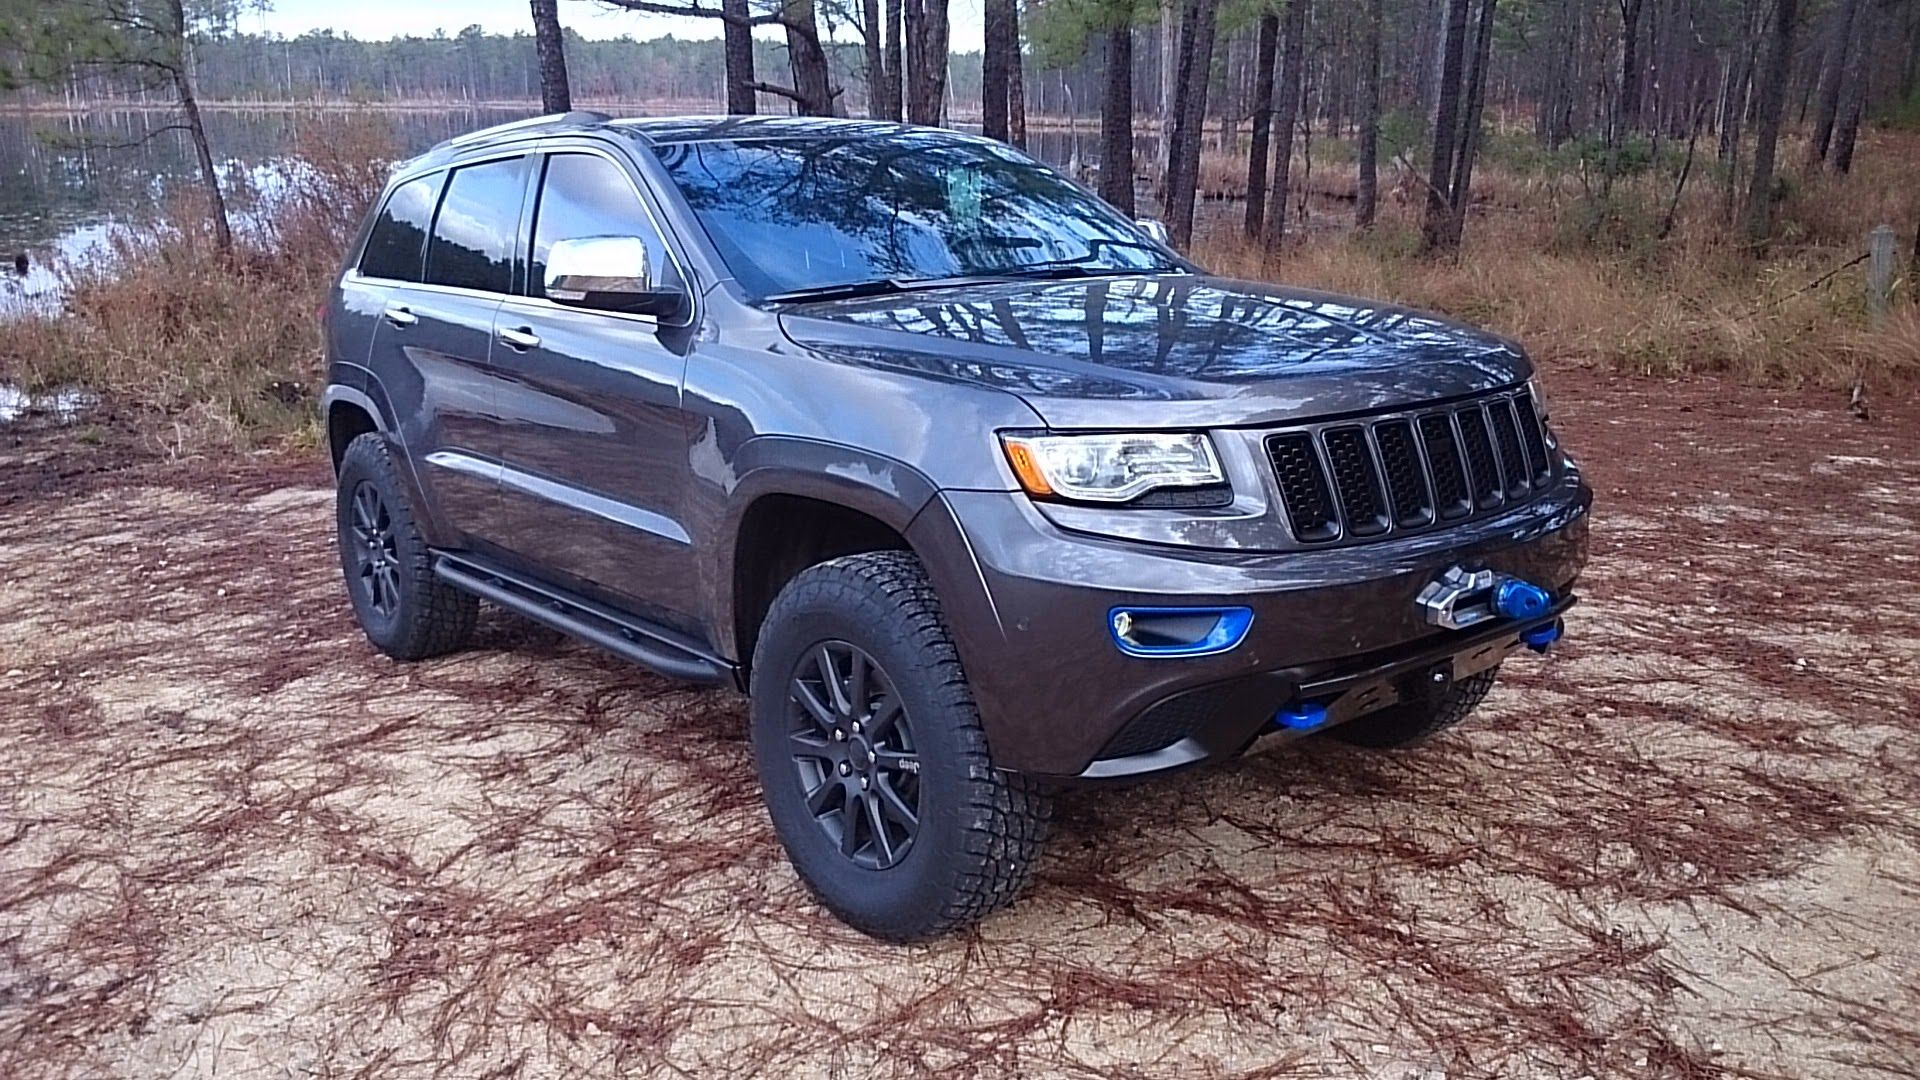 Wk2 Grand Cherokee W Custom Blue Trim Jeep Grand Cherokee Jeep